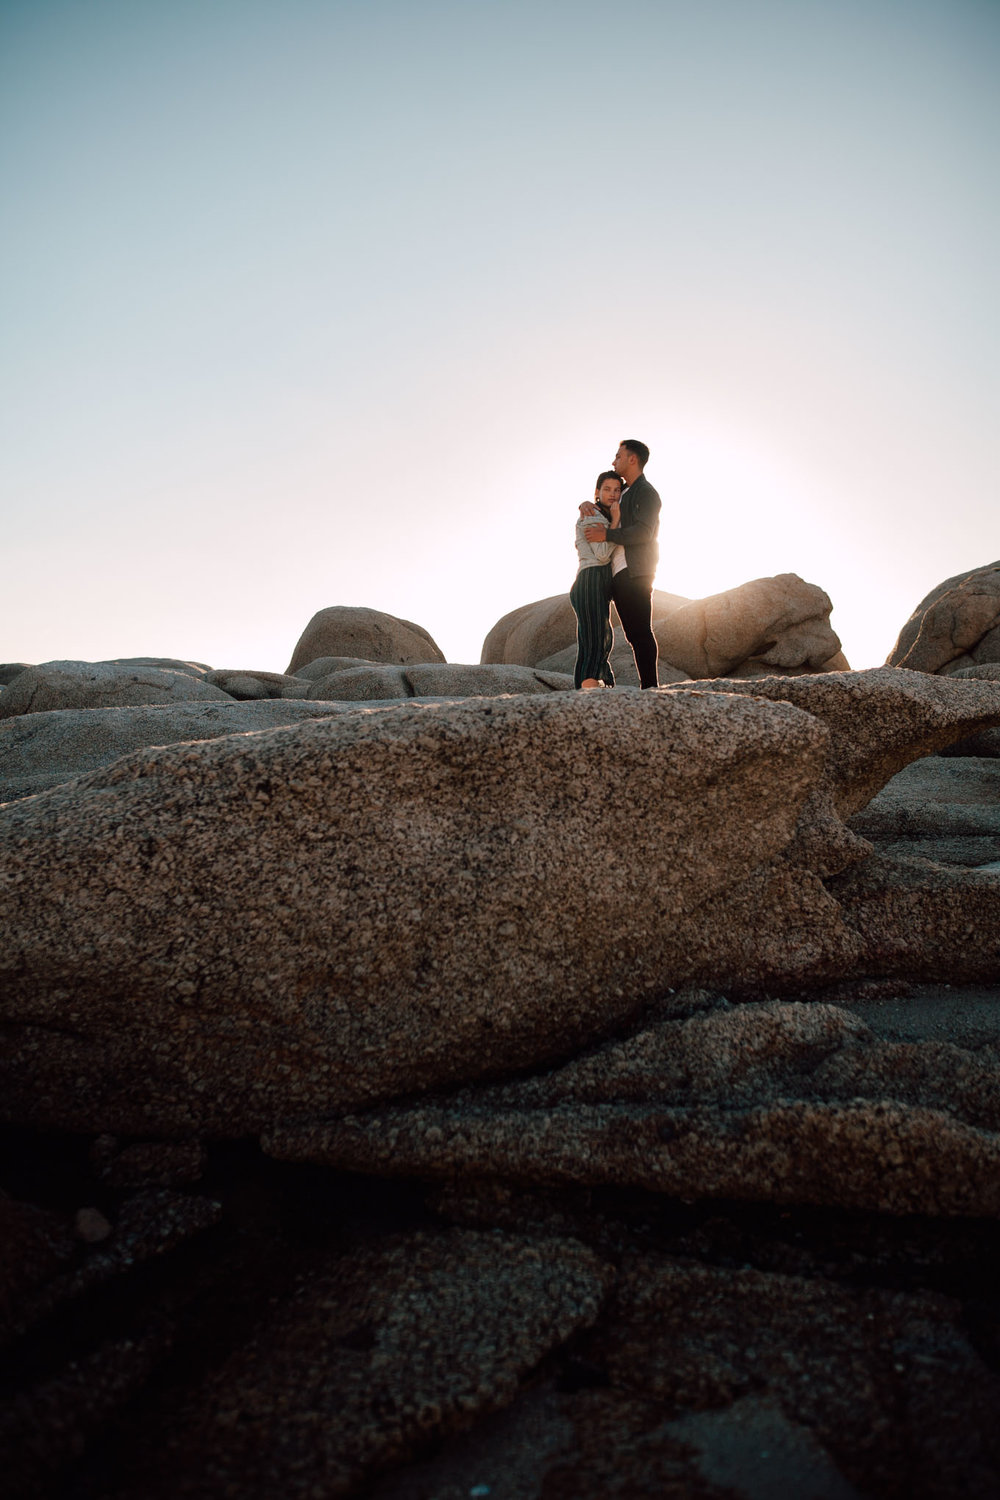 Cape-Town-Pia-Anna-Christian-Wedding-Photography-South-Africa-CJ-13.jpg